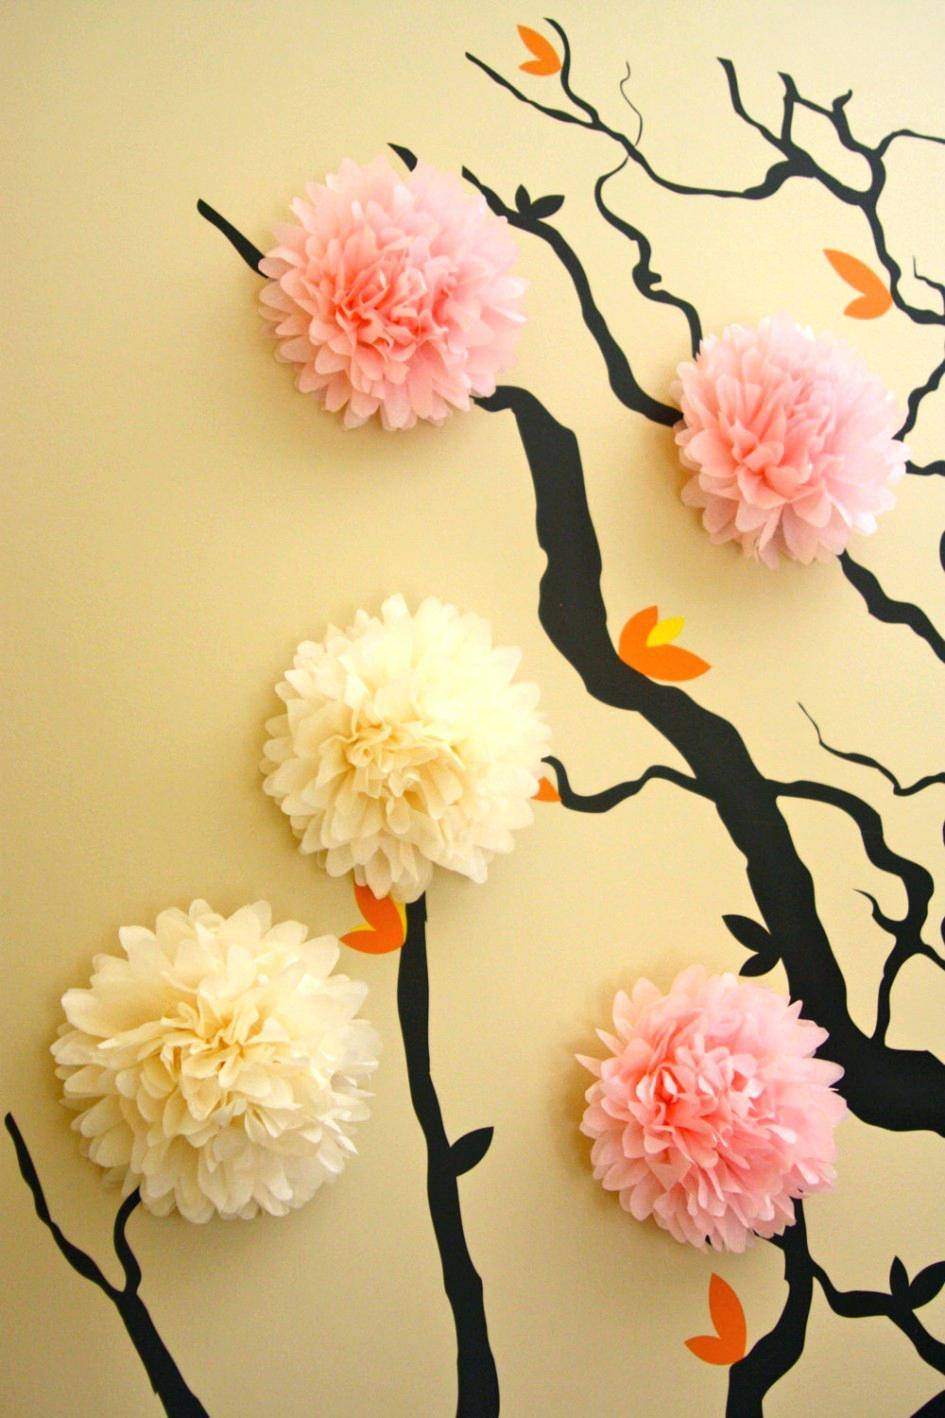 Articles With Red Cherry Blossom Wall Decor Tag: Cherry Blossom In Most Up To Date Red Cherry Blossom Wall Art (View 16 of 30)